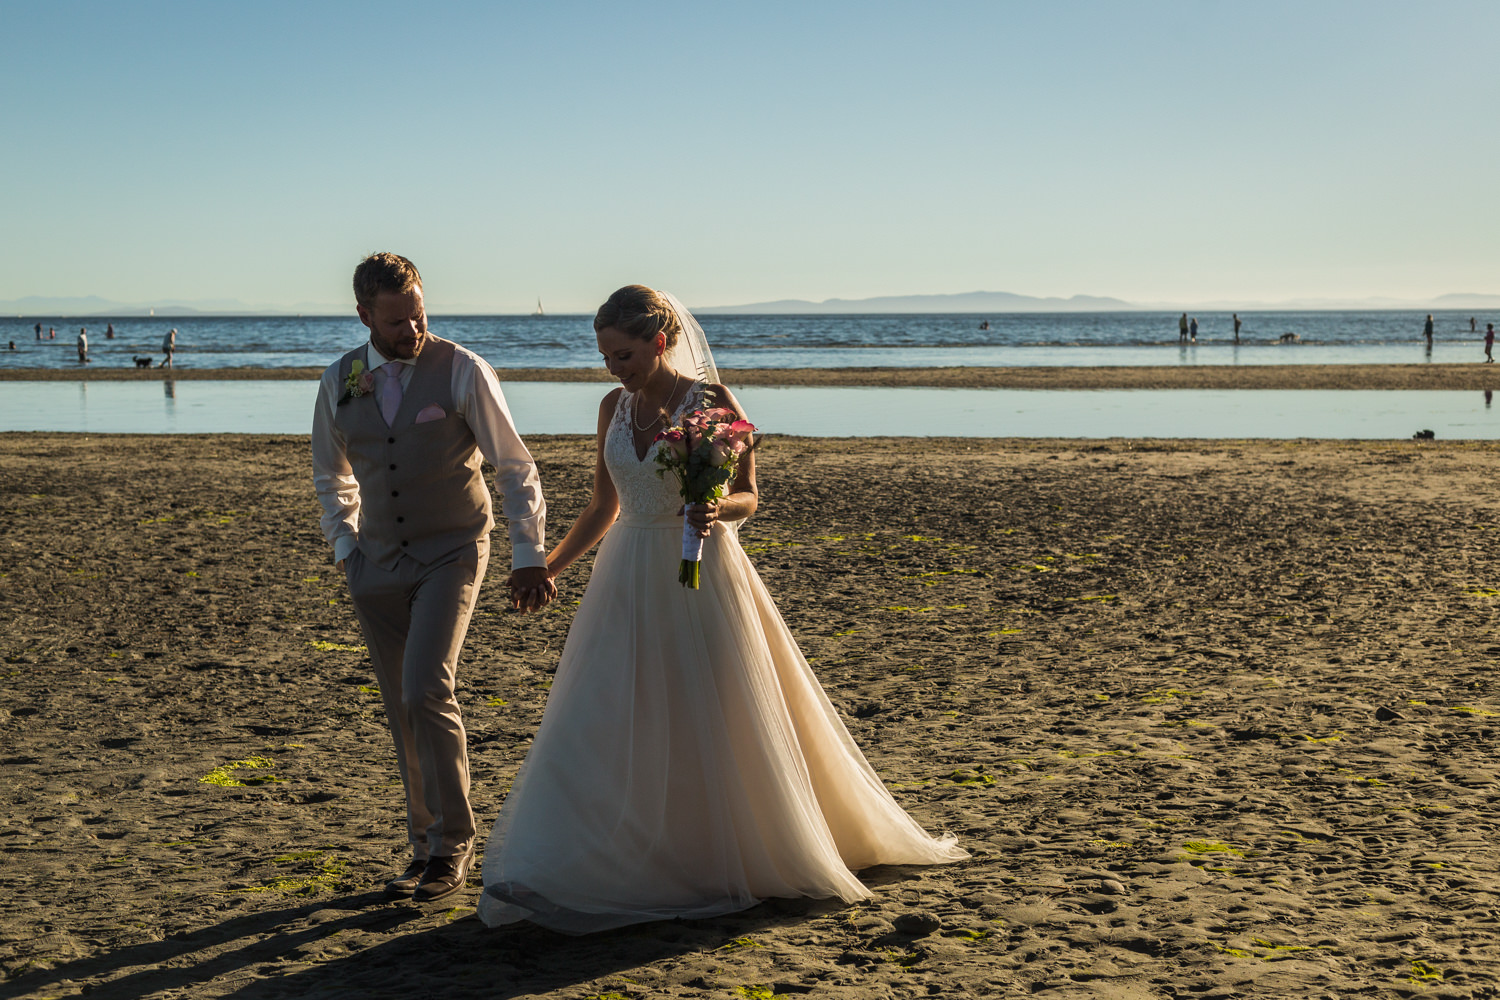 WHITE ROCK WEDDING – KRISTEN & KIM